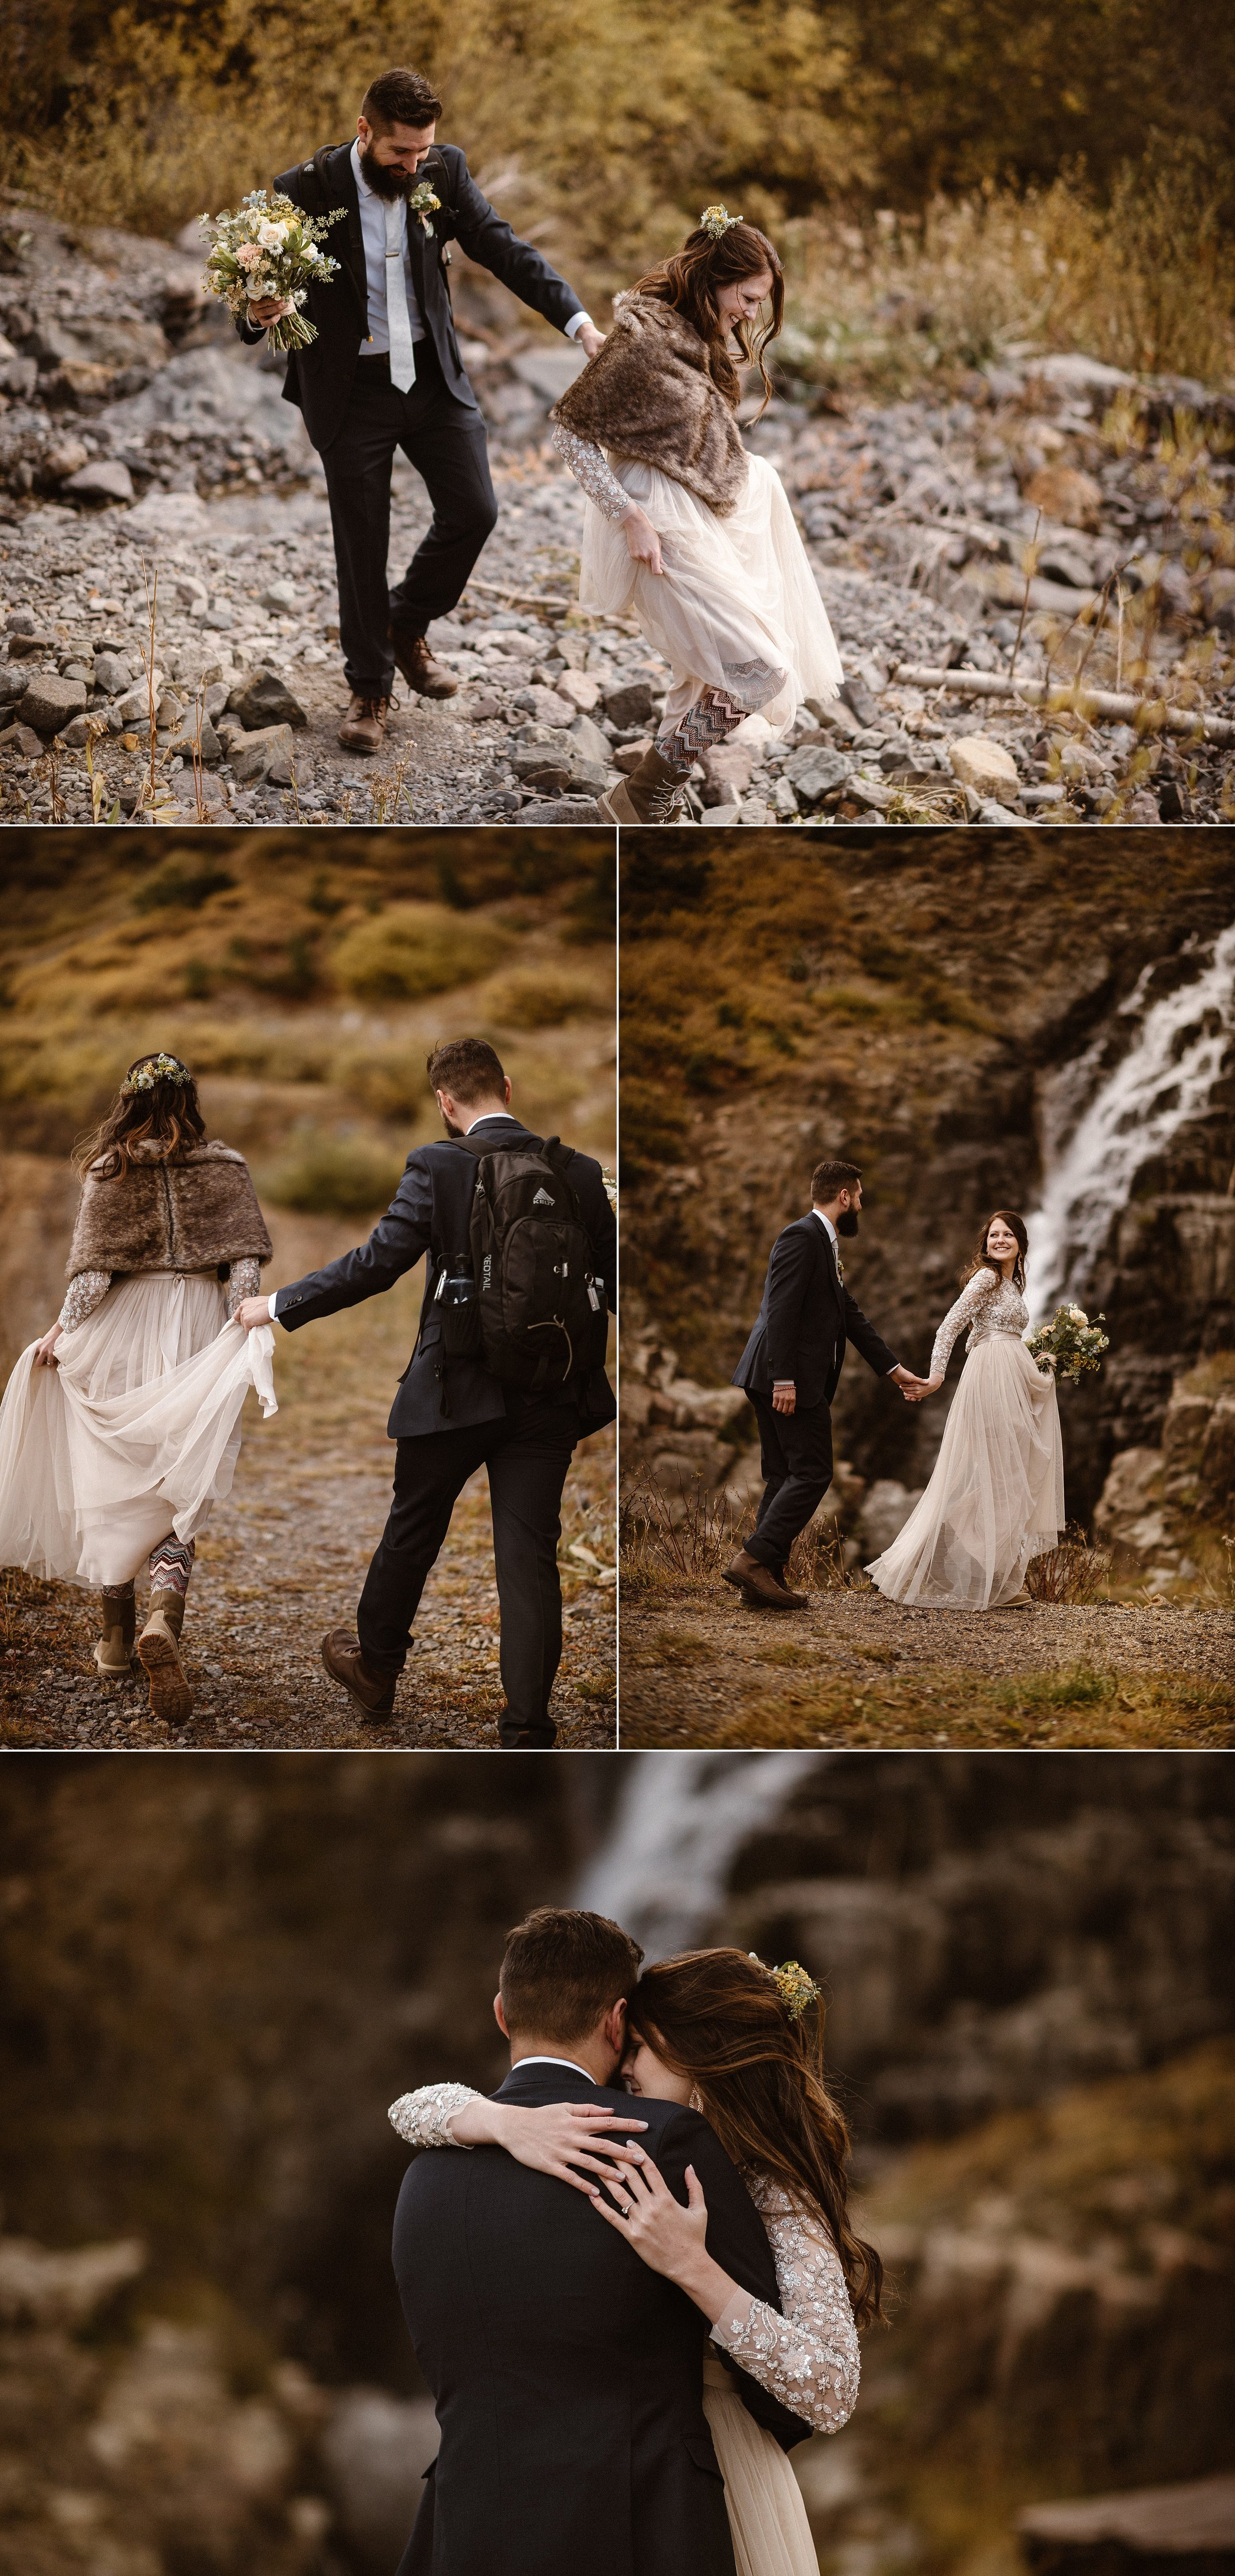 They trekked down rocky trails through Yankee Boy Basin with Ouray below them, stopping next to a waterfall that would soon be frozen with winter. These romantic adventurers took their elopement to the San Juan Mountains with their traveling elopement photographer Maddie Mae so they could say their vows privately among the colors of fall.